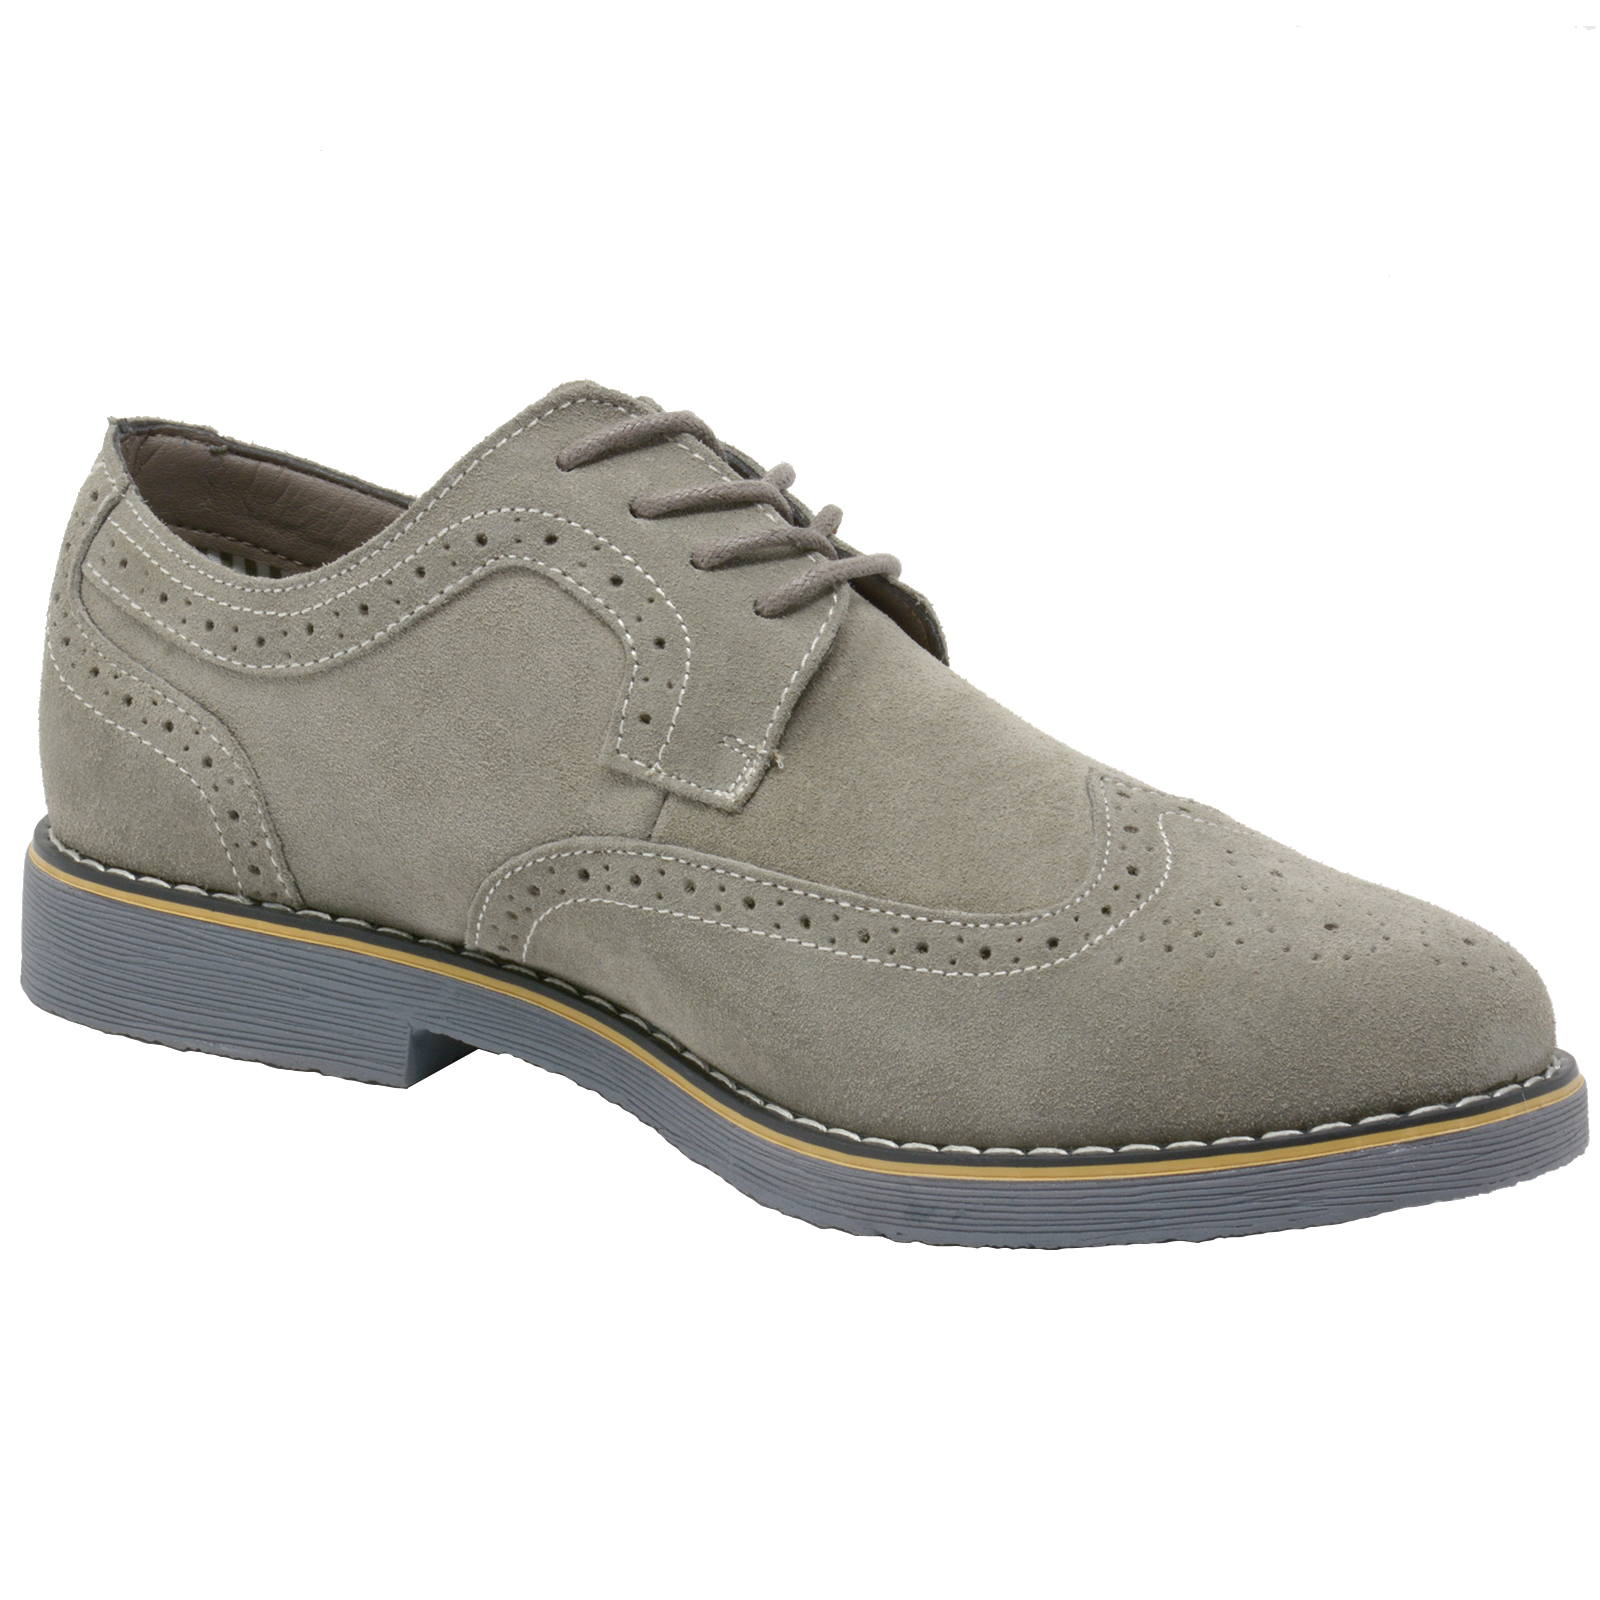 Alpine-Swiss-Beau-Mens-Dress-Shoes-Genuine-Suede-Wing-Tip-Brogue-Lace-Up-Oxfords thumbnail 16